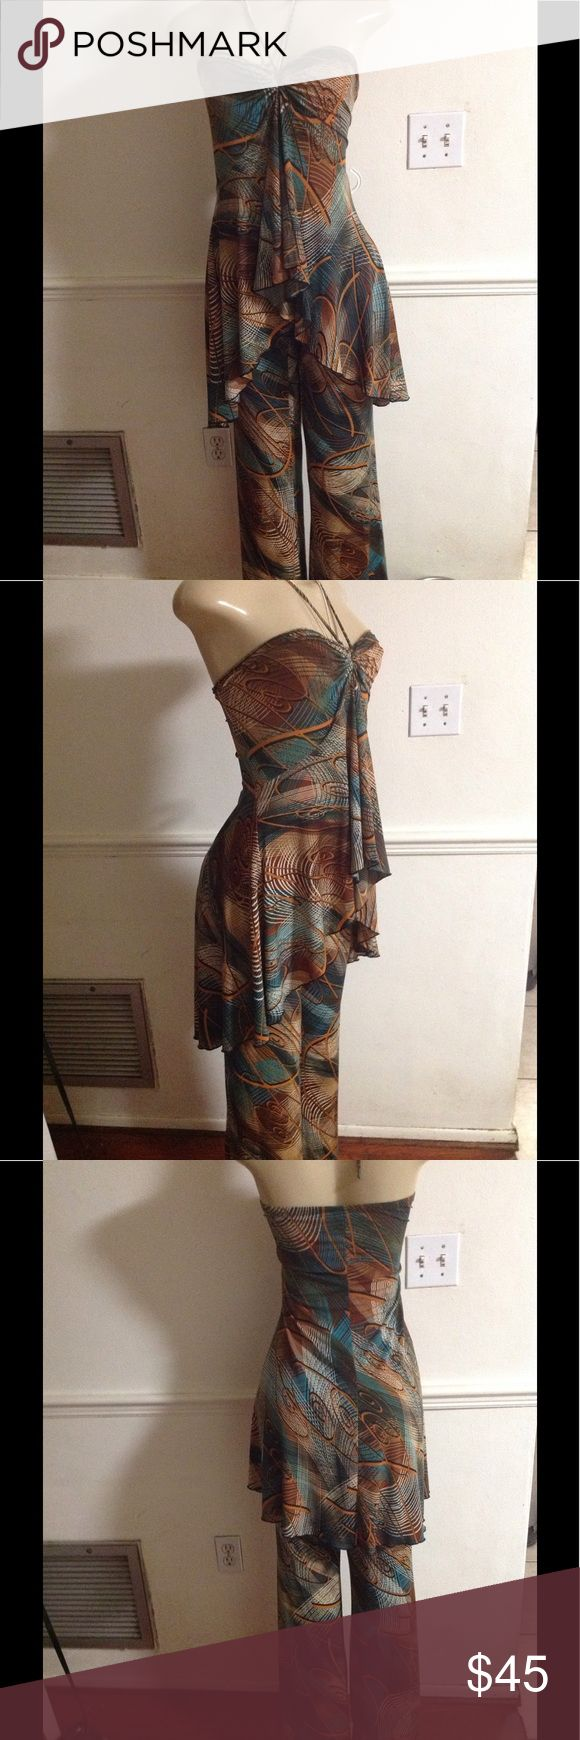 True vintage set by Miss California Apparel This gorgeous true vintage 2 piece set is a stunning halter top open in front bell bottoms 70ties look simply stunning hippie boho look Miss California Apparel Pants Jumpsuits & Rompers